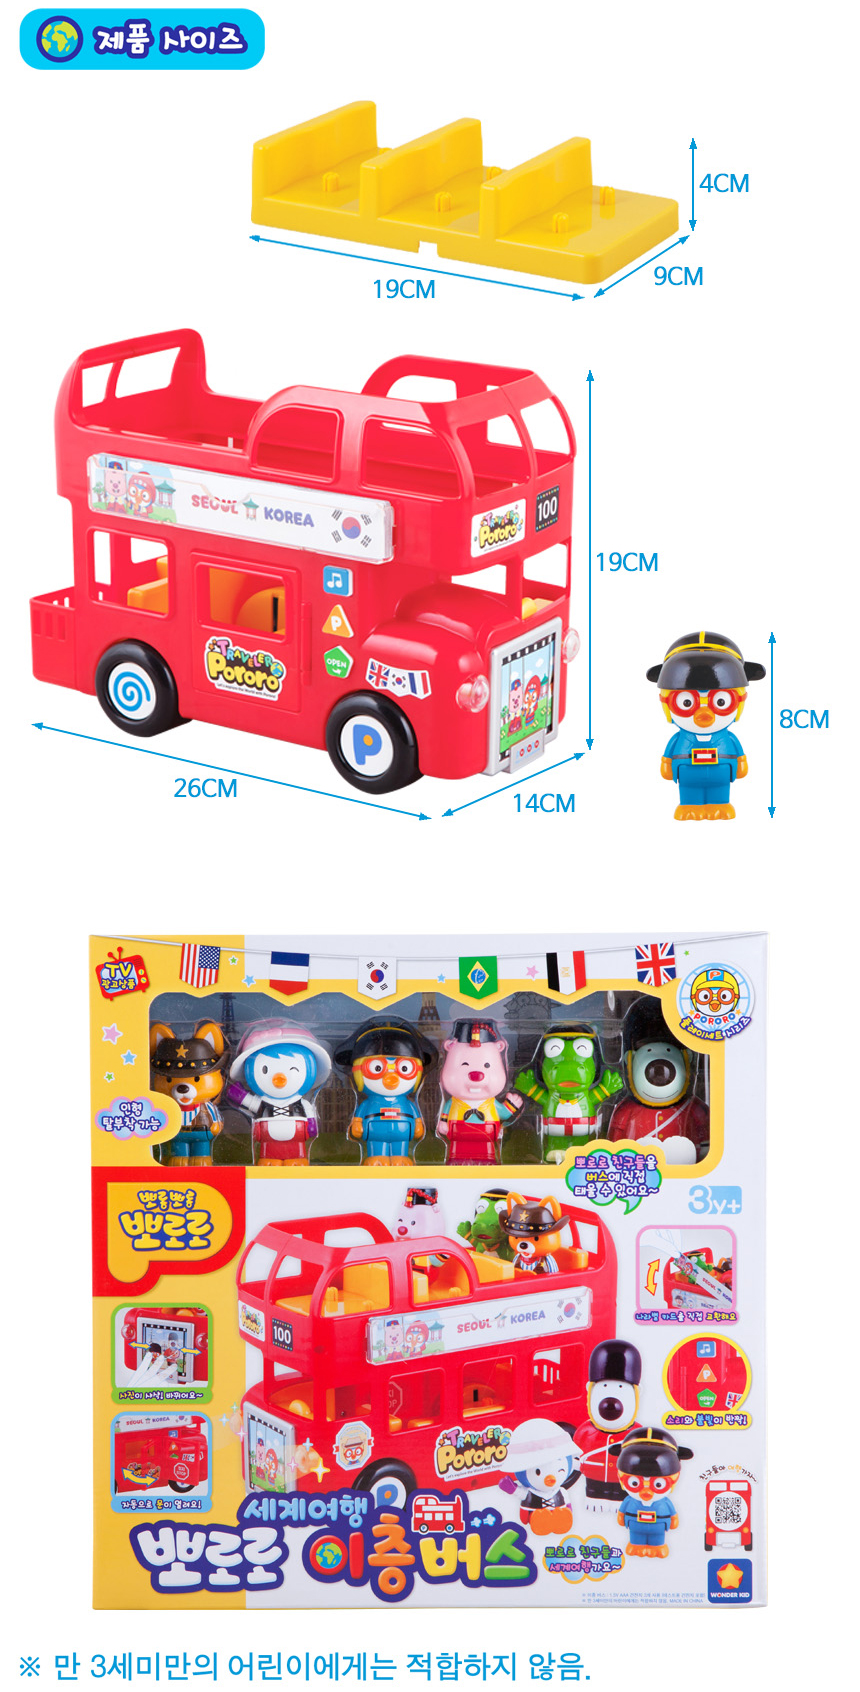 pororo_travel_bus_05.jpg